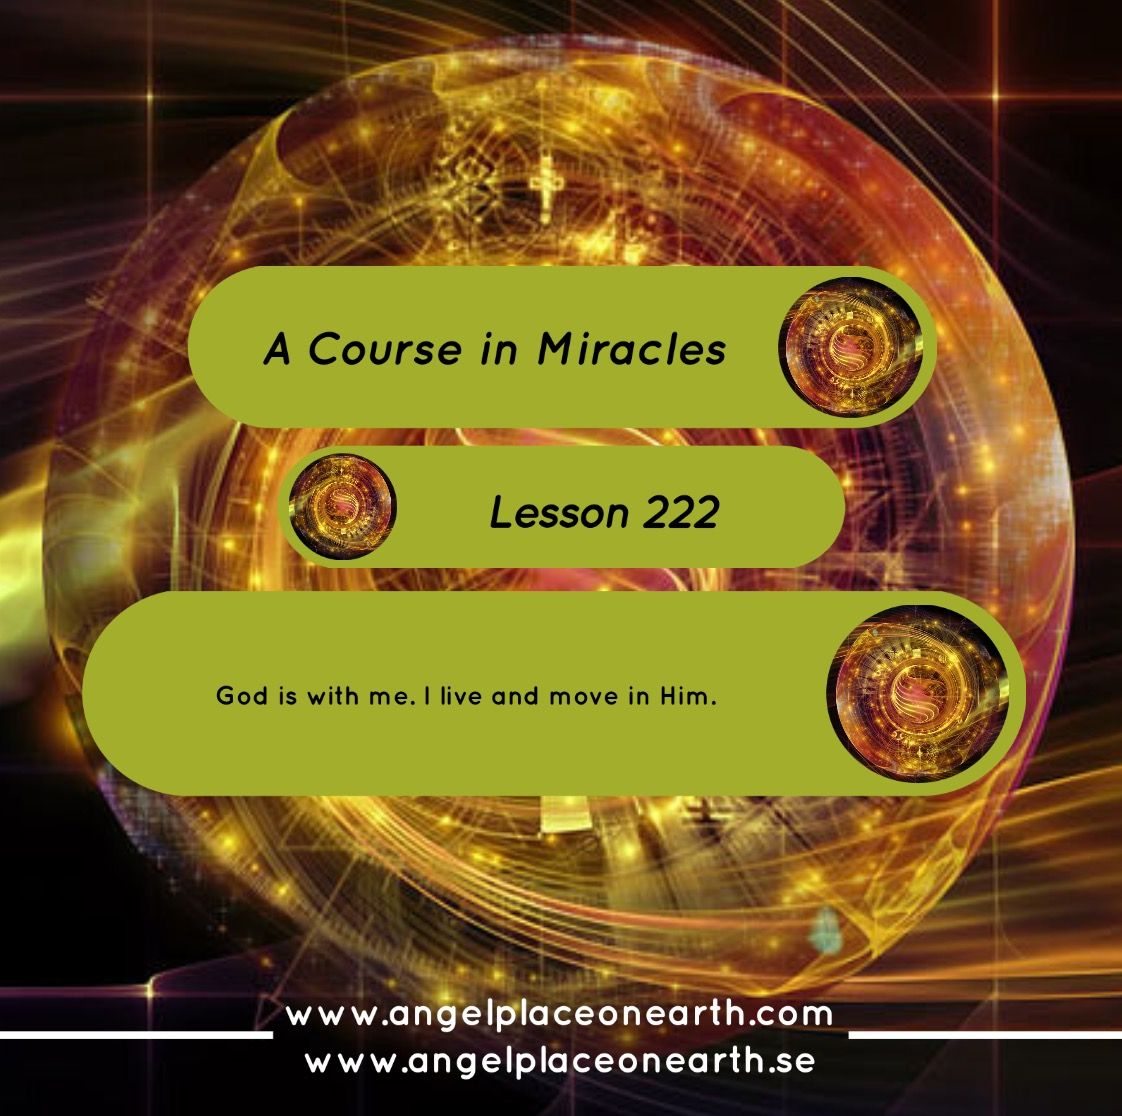 http://www.miraclecenter.org/a-course-in-miracles/W-pII.222.php